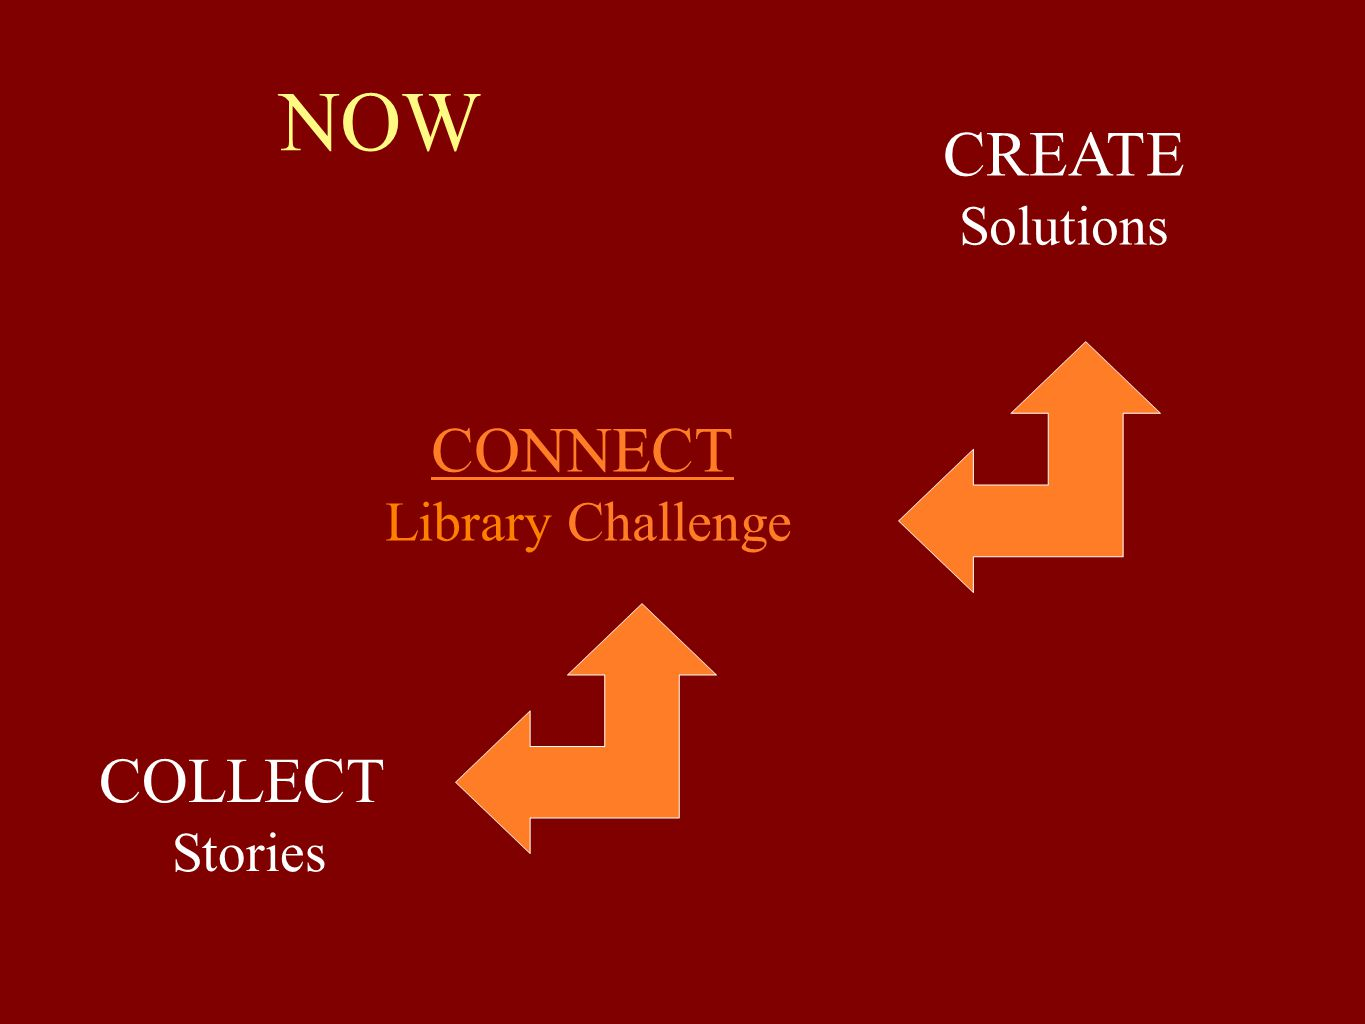 NOW COLLECT Stories CONNECT Library Challenge CREATE Solutions